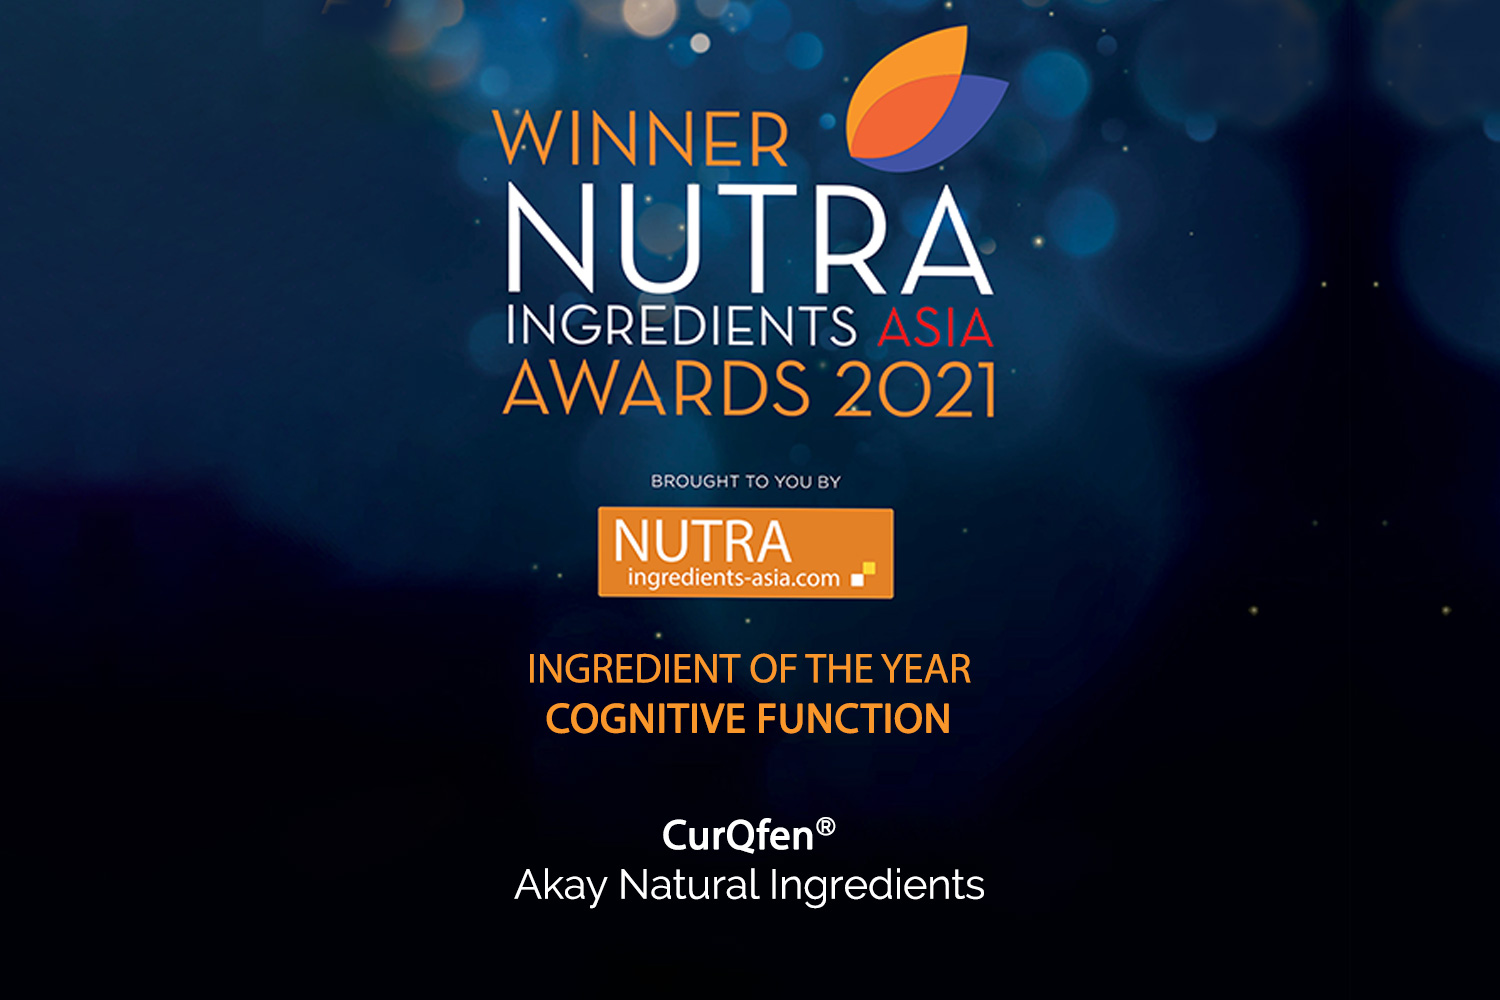 Ingredient of the year 2021